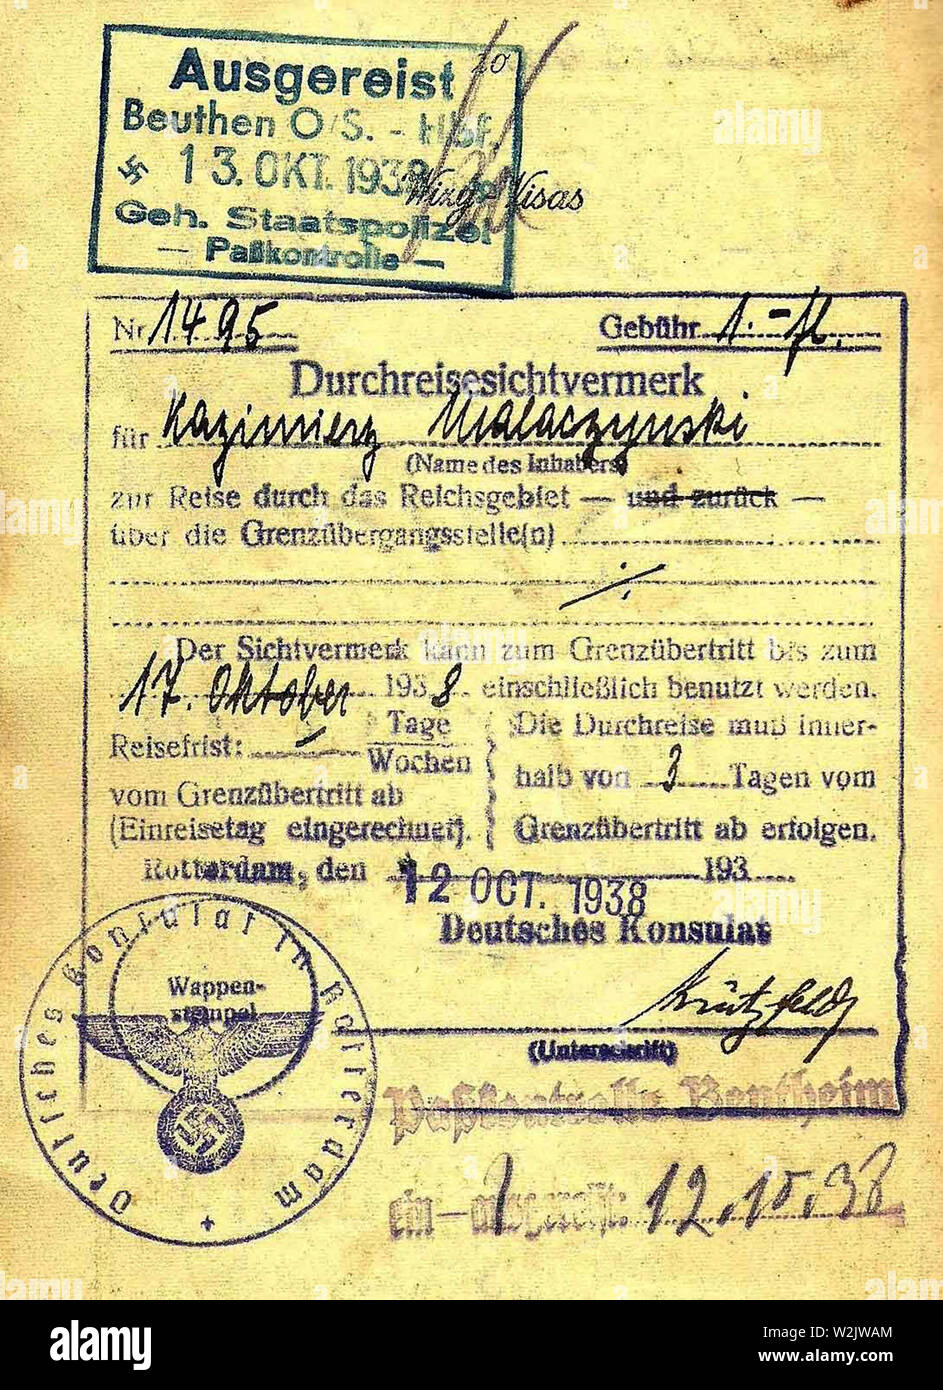 1938 Gestapo border inspection stamp applied when leaving Germany. Transit visa for Germany in a Polish passport, issued in Rotterdam on 1938/10/12, valid for 3 days' transit. Overstruck by entry stamp from passport control station Bentheim on 1938/10/12, and exit stamp from Gestapo passport control service in Beuthen, Upper Silesia, central station on 1938/10/13. - Stock Image